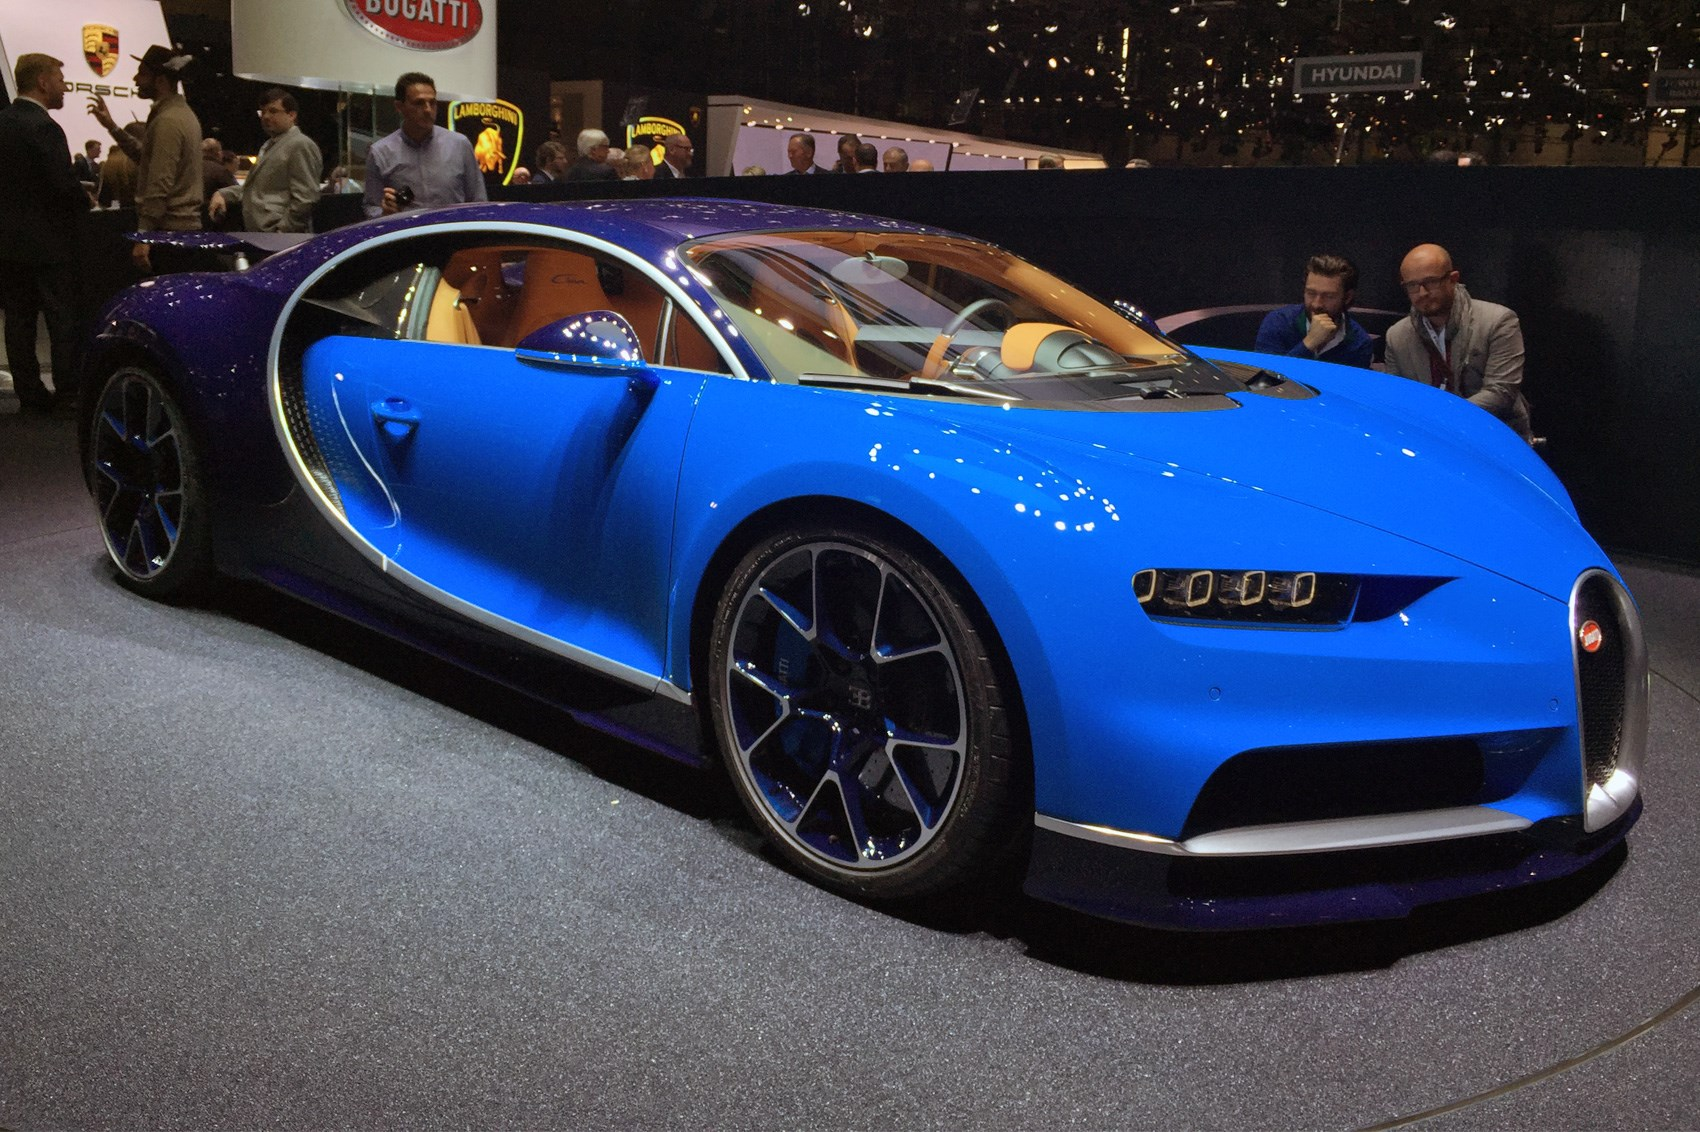 Ultrablogus  Personable Bugatti Is Go New Chiron Name Confirmed Here At Geneva  By  With Extraordinary Bugatti Chiron Revealed At Geneva  The World Has A New Fastest Production Car With Comely Ford Kuga  Interior Also  Vw Passat Interior In Addition Huracan Lamborghini Interior And C Class Interior  As Well As Mercedes S Amg Interior Additionally Mazda Cx  Interior Space From Carmagazinecouk With Ultrablogus  Extraordinary Bugatti Is Go New Chiron Name Confirmed Here At Geneva  By  With Comely Bugatti Chiron Revealed At Geneva  The World Has A New Fastest Production Car And Personable Ford Kuga  Interior Also  Vw Passat Interior In Addition Huracan Lamborghini Interior From Carmagazinecouk